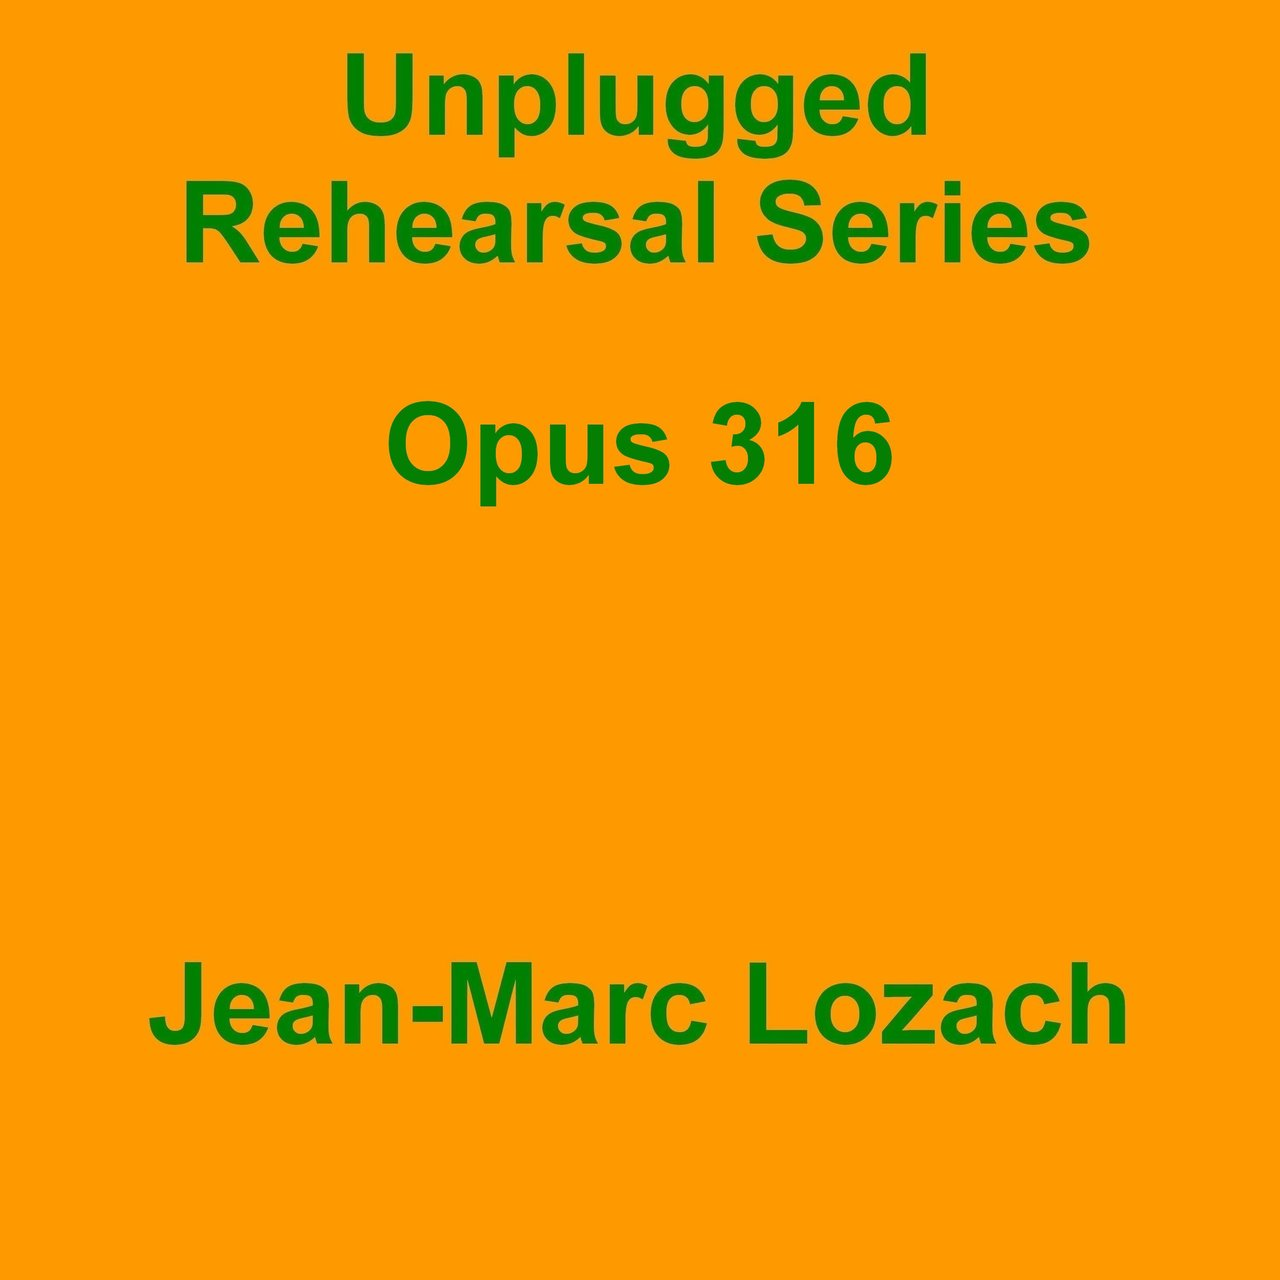 Unplugged Rehearsal Series Opus 316